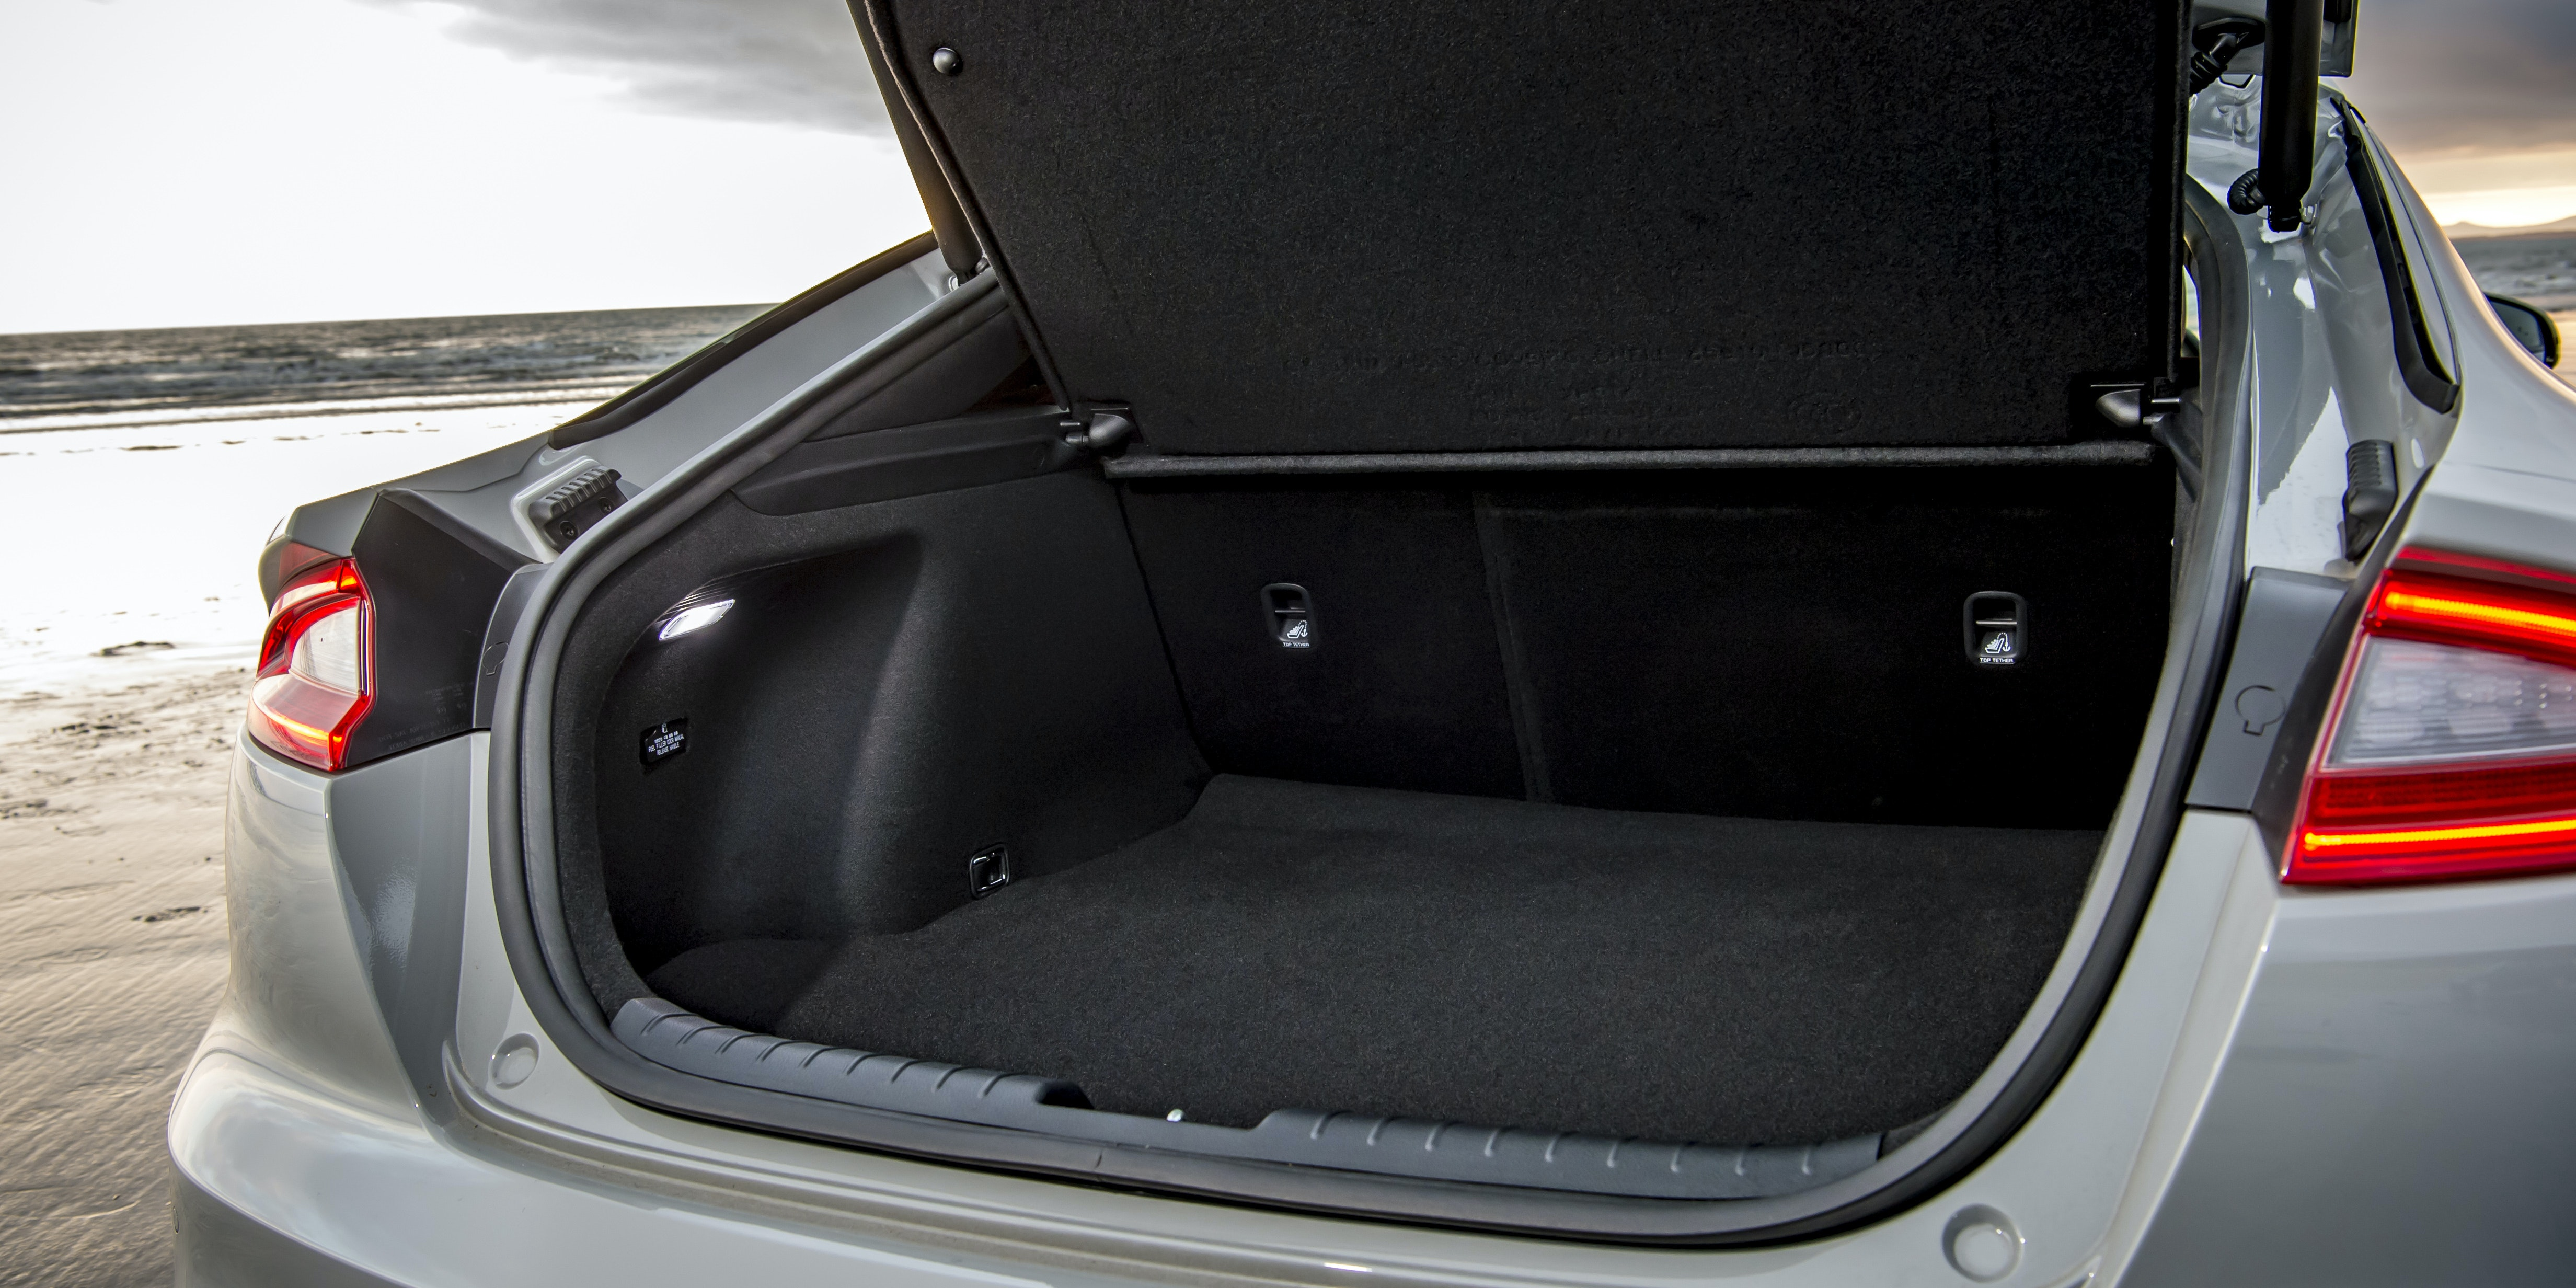 You can fit a bag of golf clubs in the Stinger's boot, but there's more room in alternative models from Audi and BMW